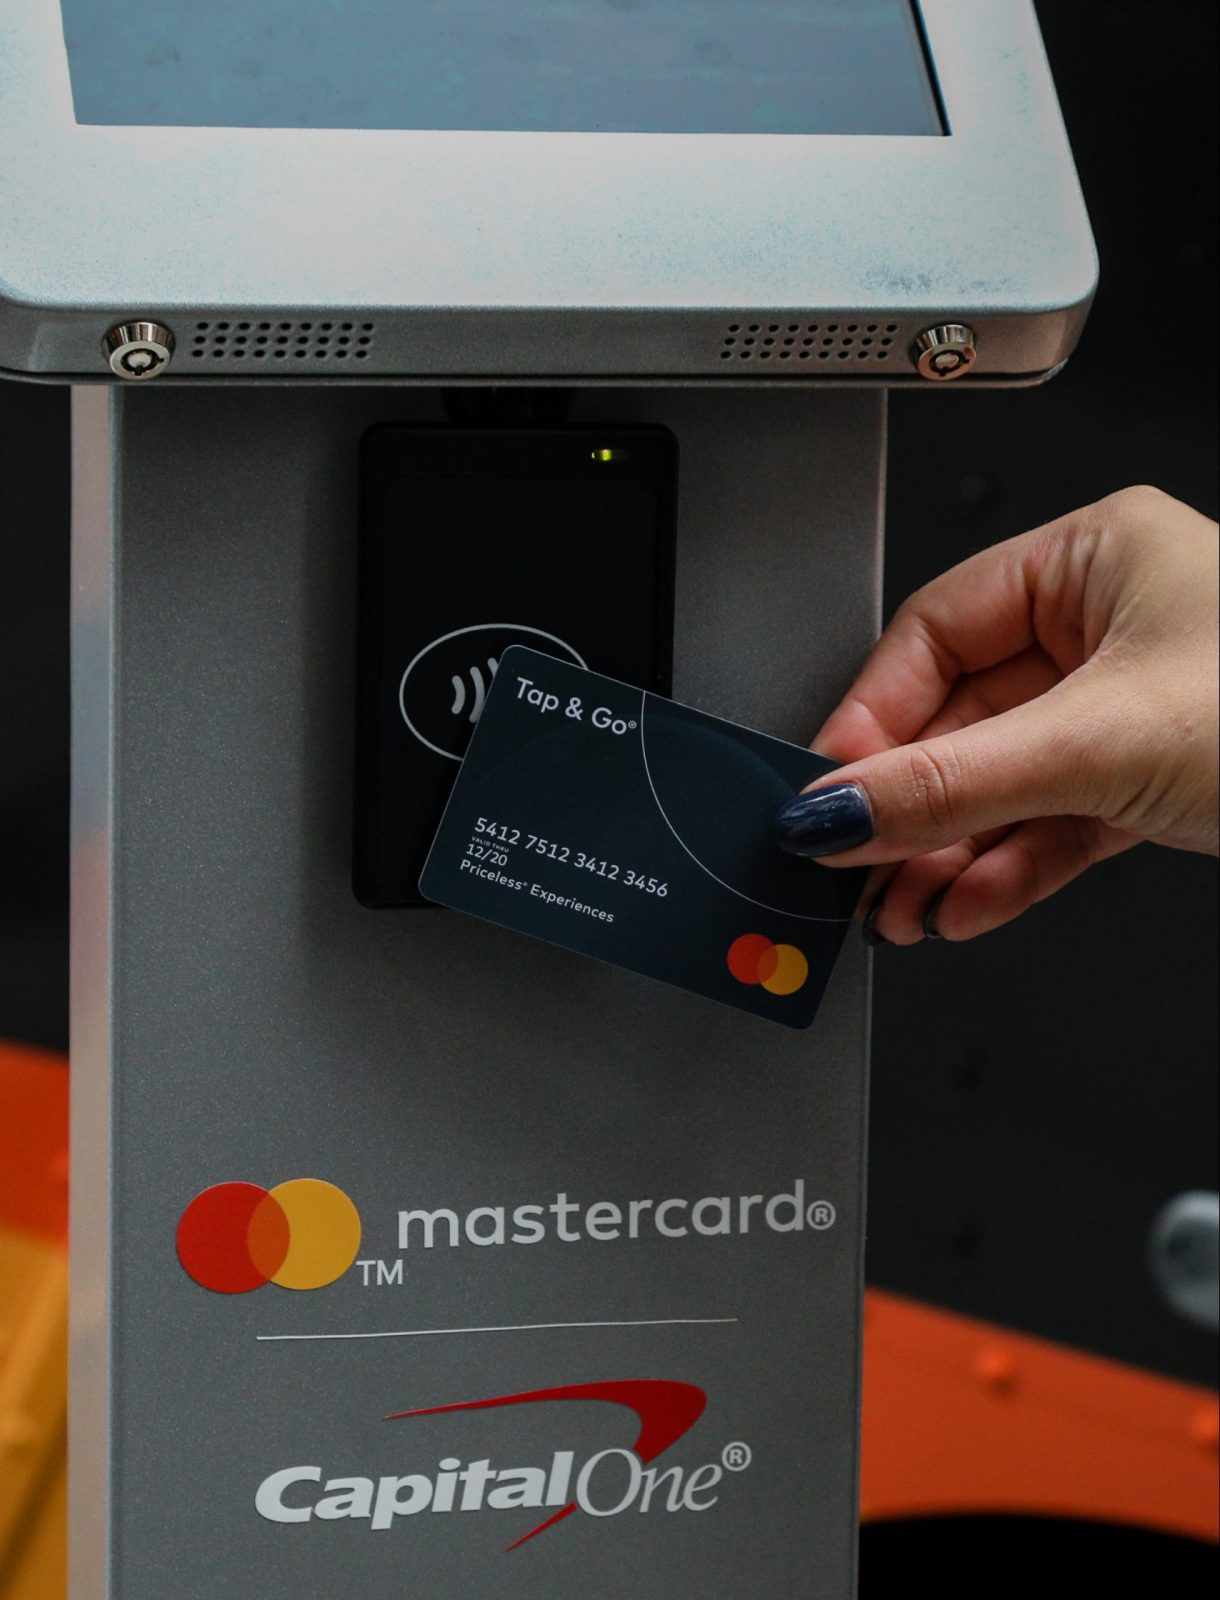 Mastercard Kiosk Street Marketing Campaign